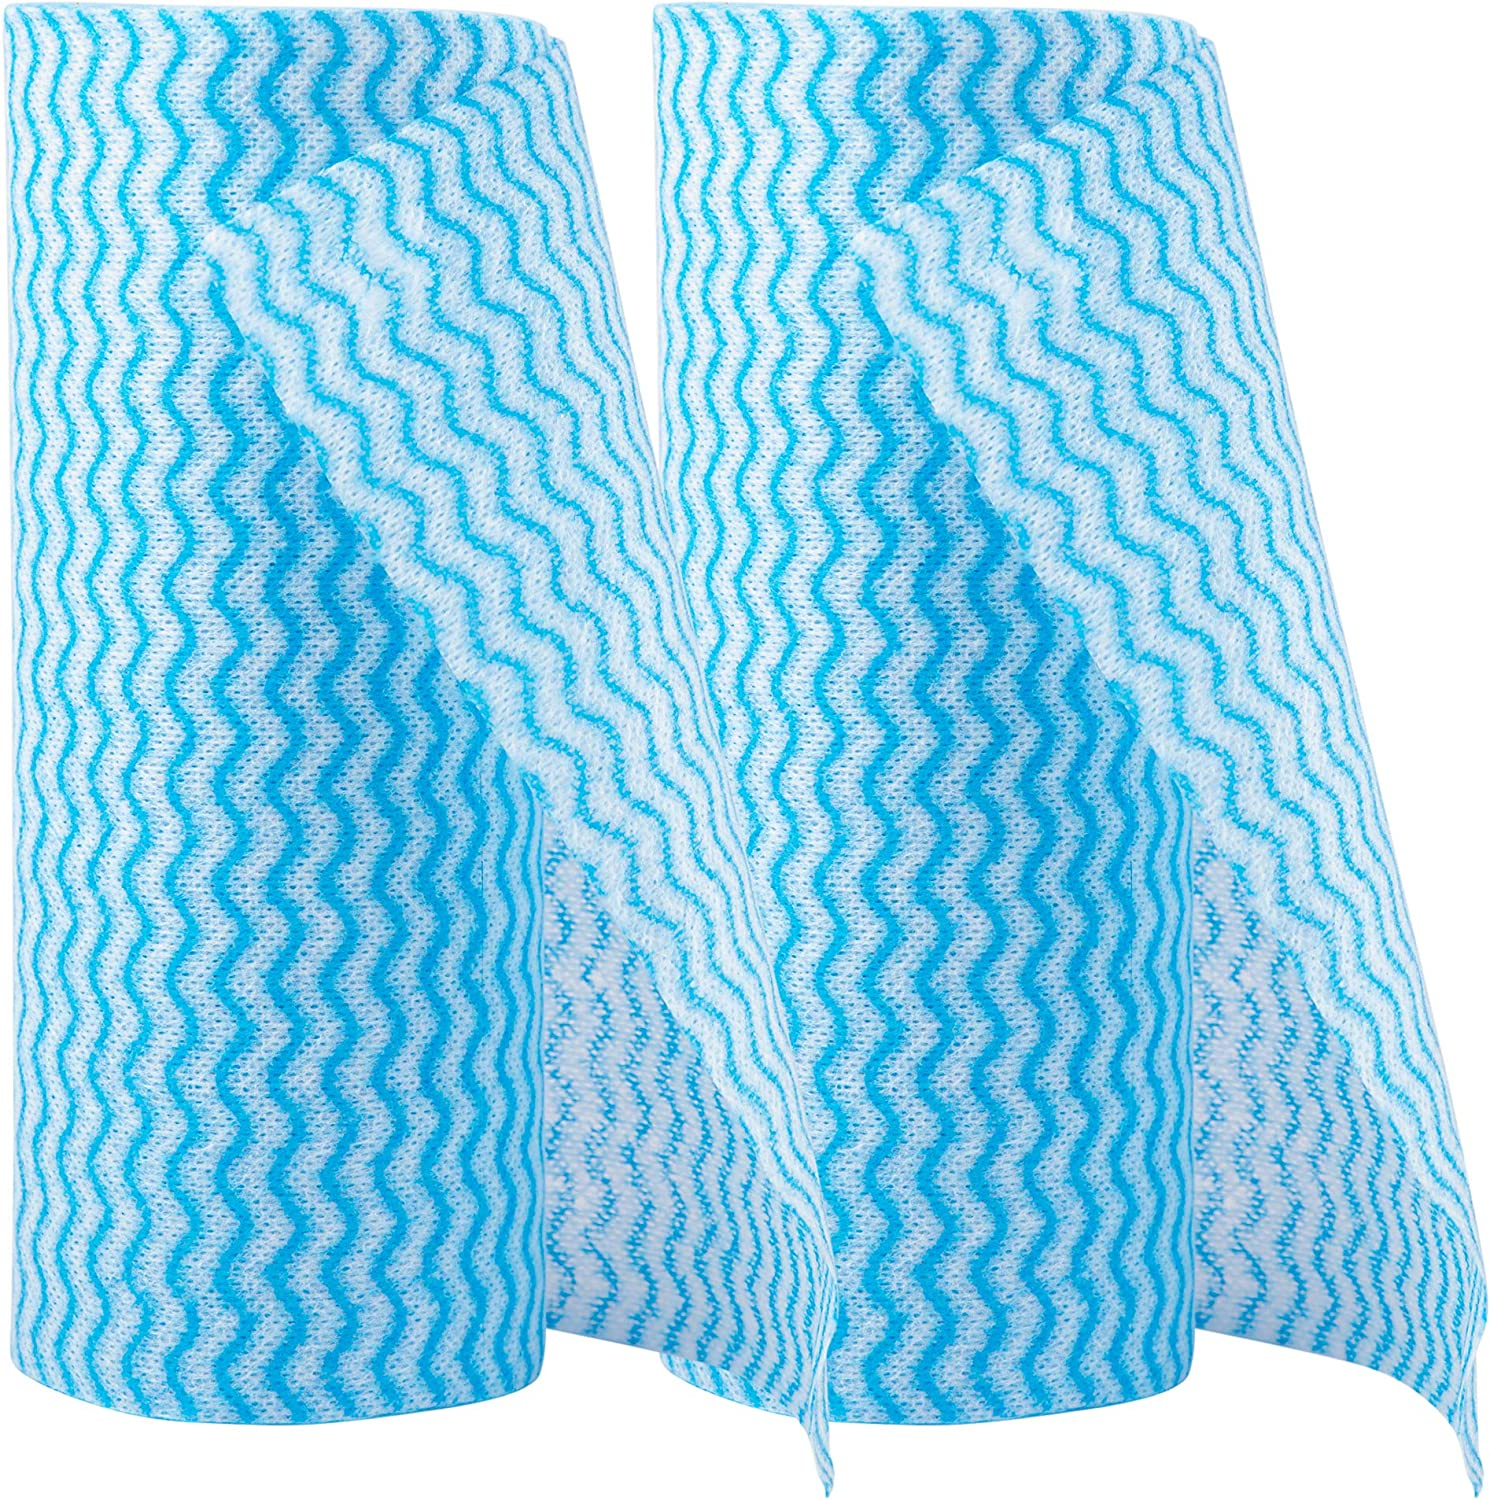 Reusable Cleaning Cloths, 2-Pack Reusable Cleaning Towels, 50-Piece Per Roll Reusable Kitchen Wipes for Cleaning, Blue